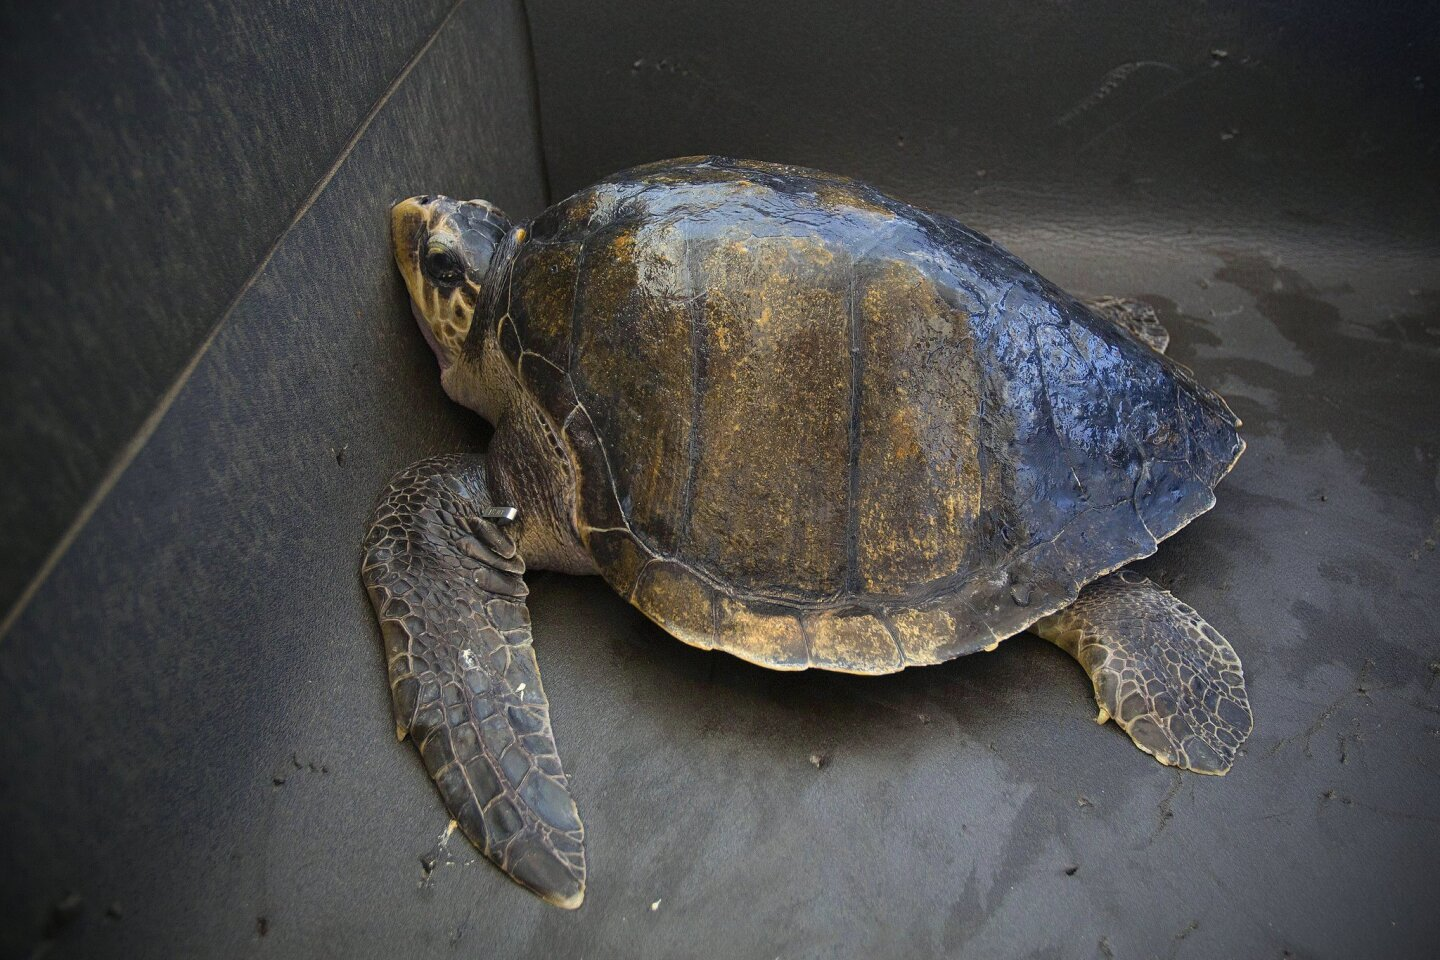 Solstice the sea turtle waits to be transported to SeaWorld's Rescue Center.